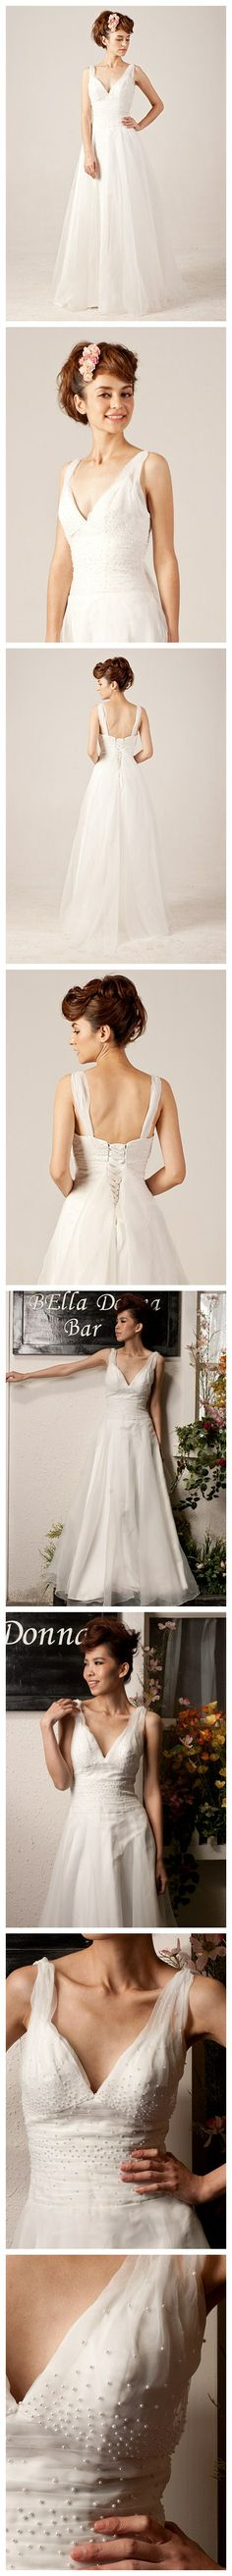 Beading V-neck Lace-up Wedding Dress with Sweep/Brush Train - Save 50% - 90% on Special Deals at http://www.ilovesavingcash.com